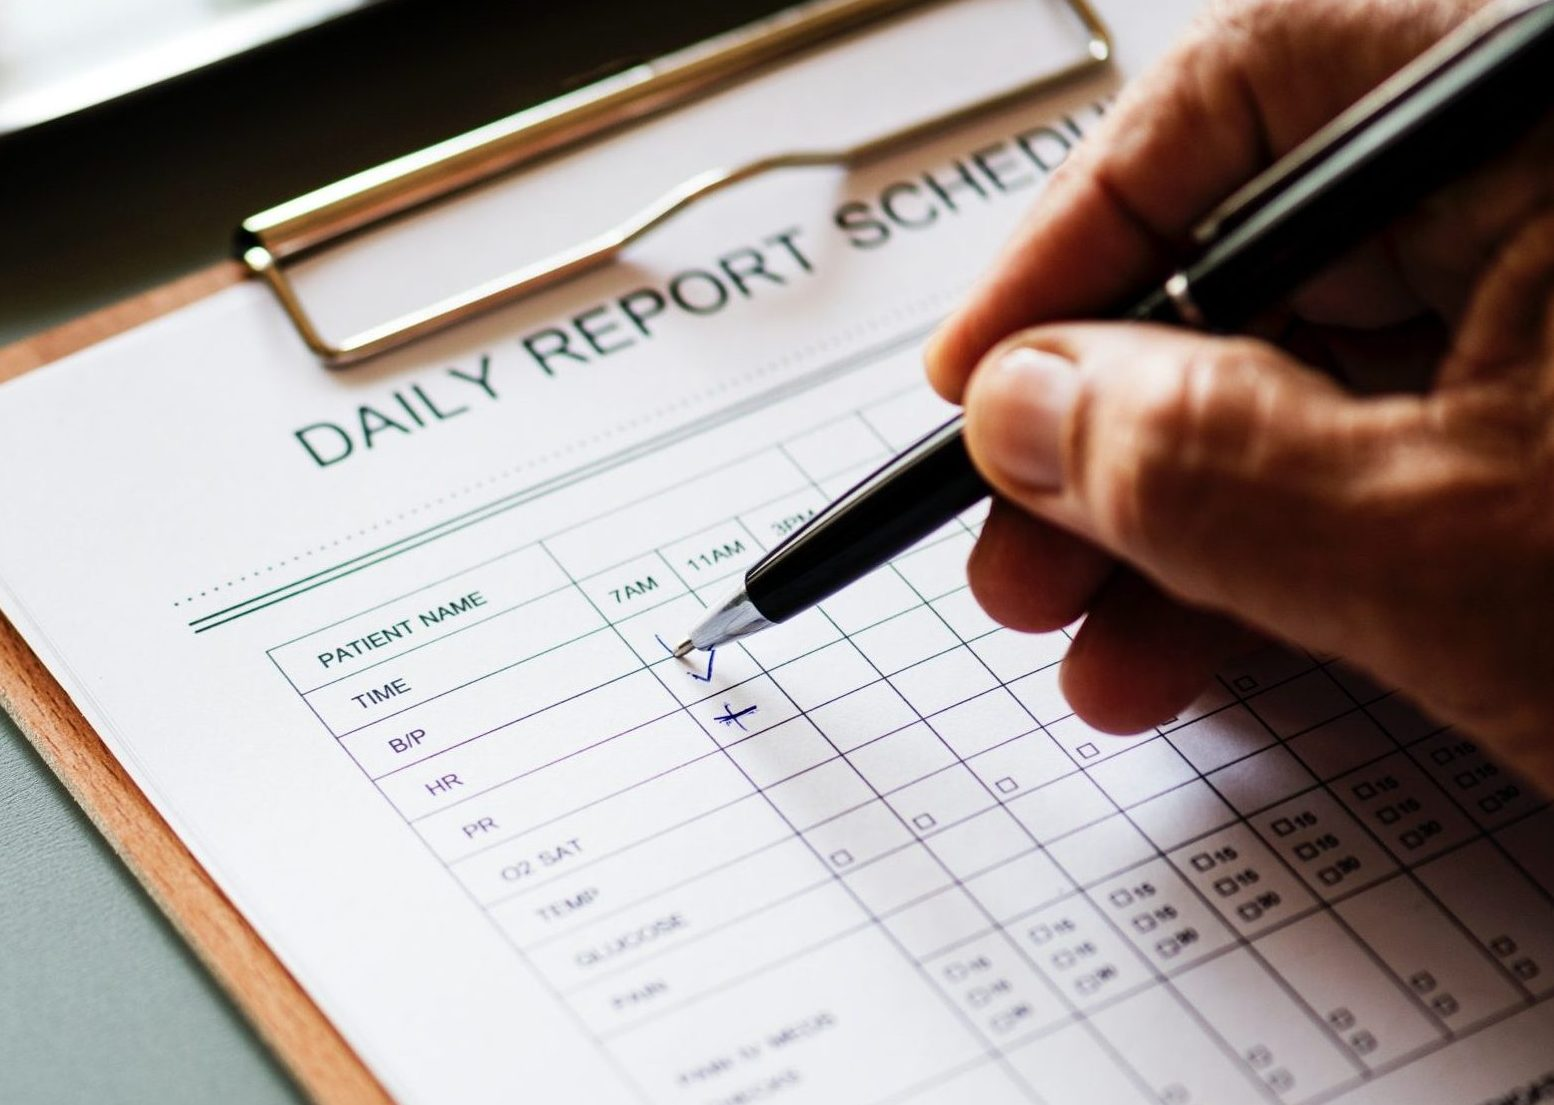 Daily report schedule